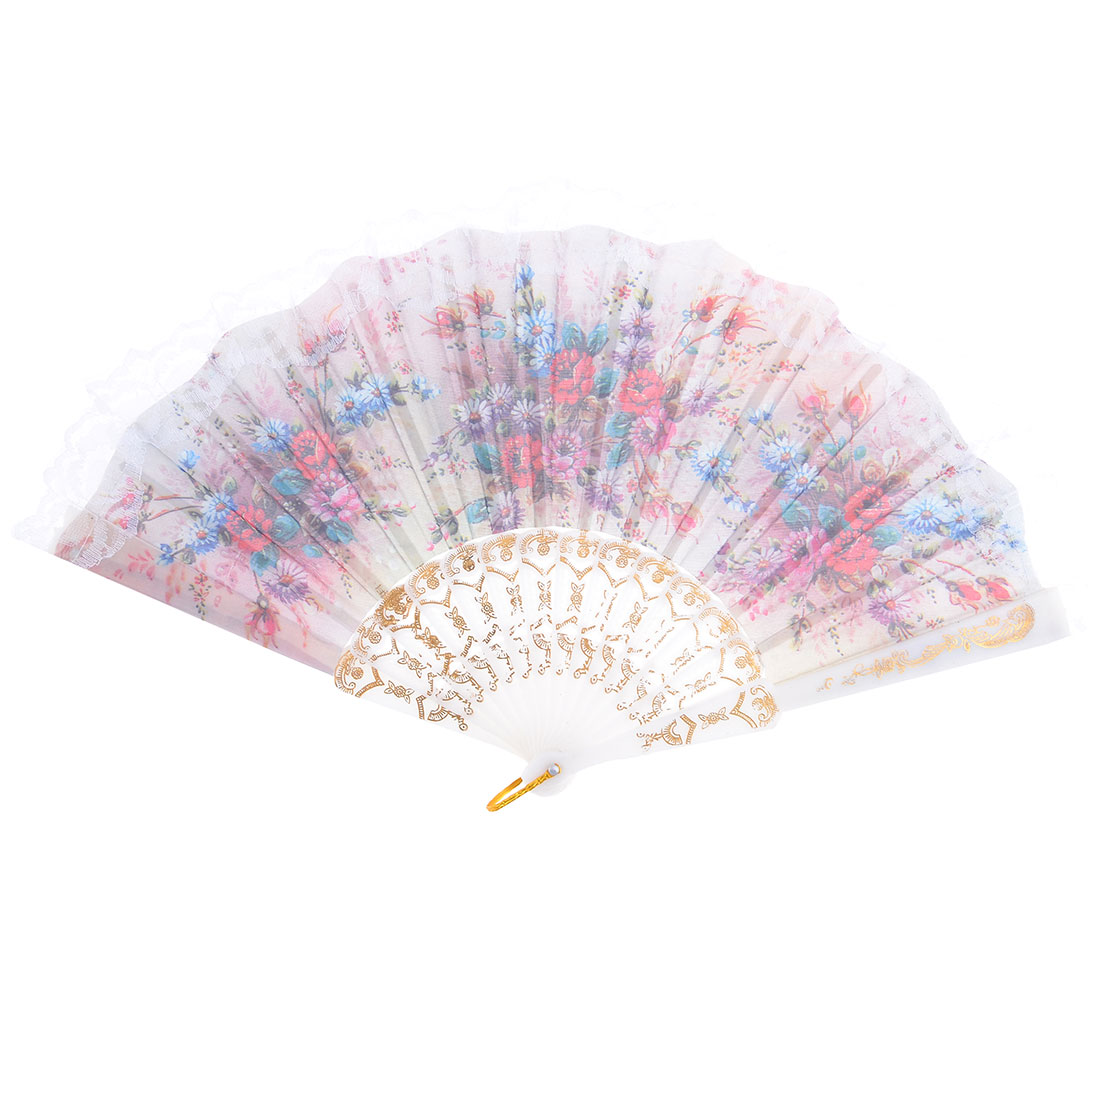 Lady Plastic Frame Lace Rim Colorful Foldable Hand Dance Fan w Metal Loop